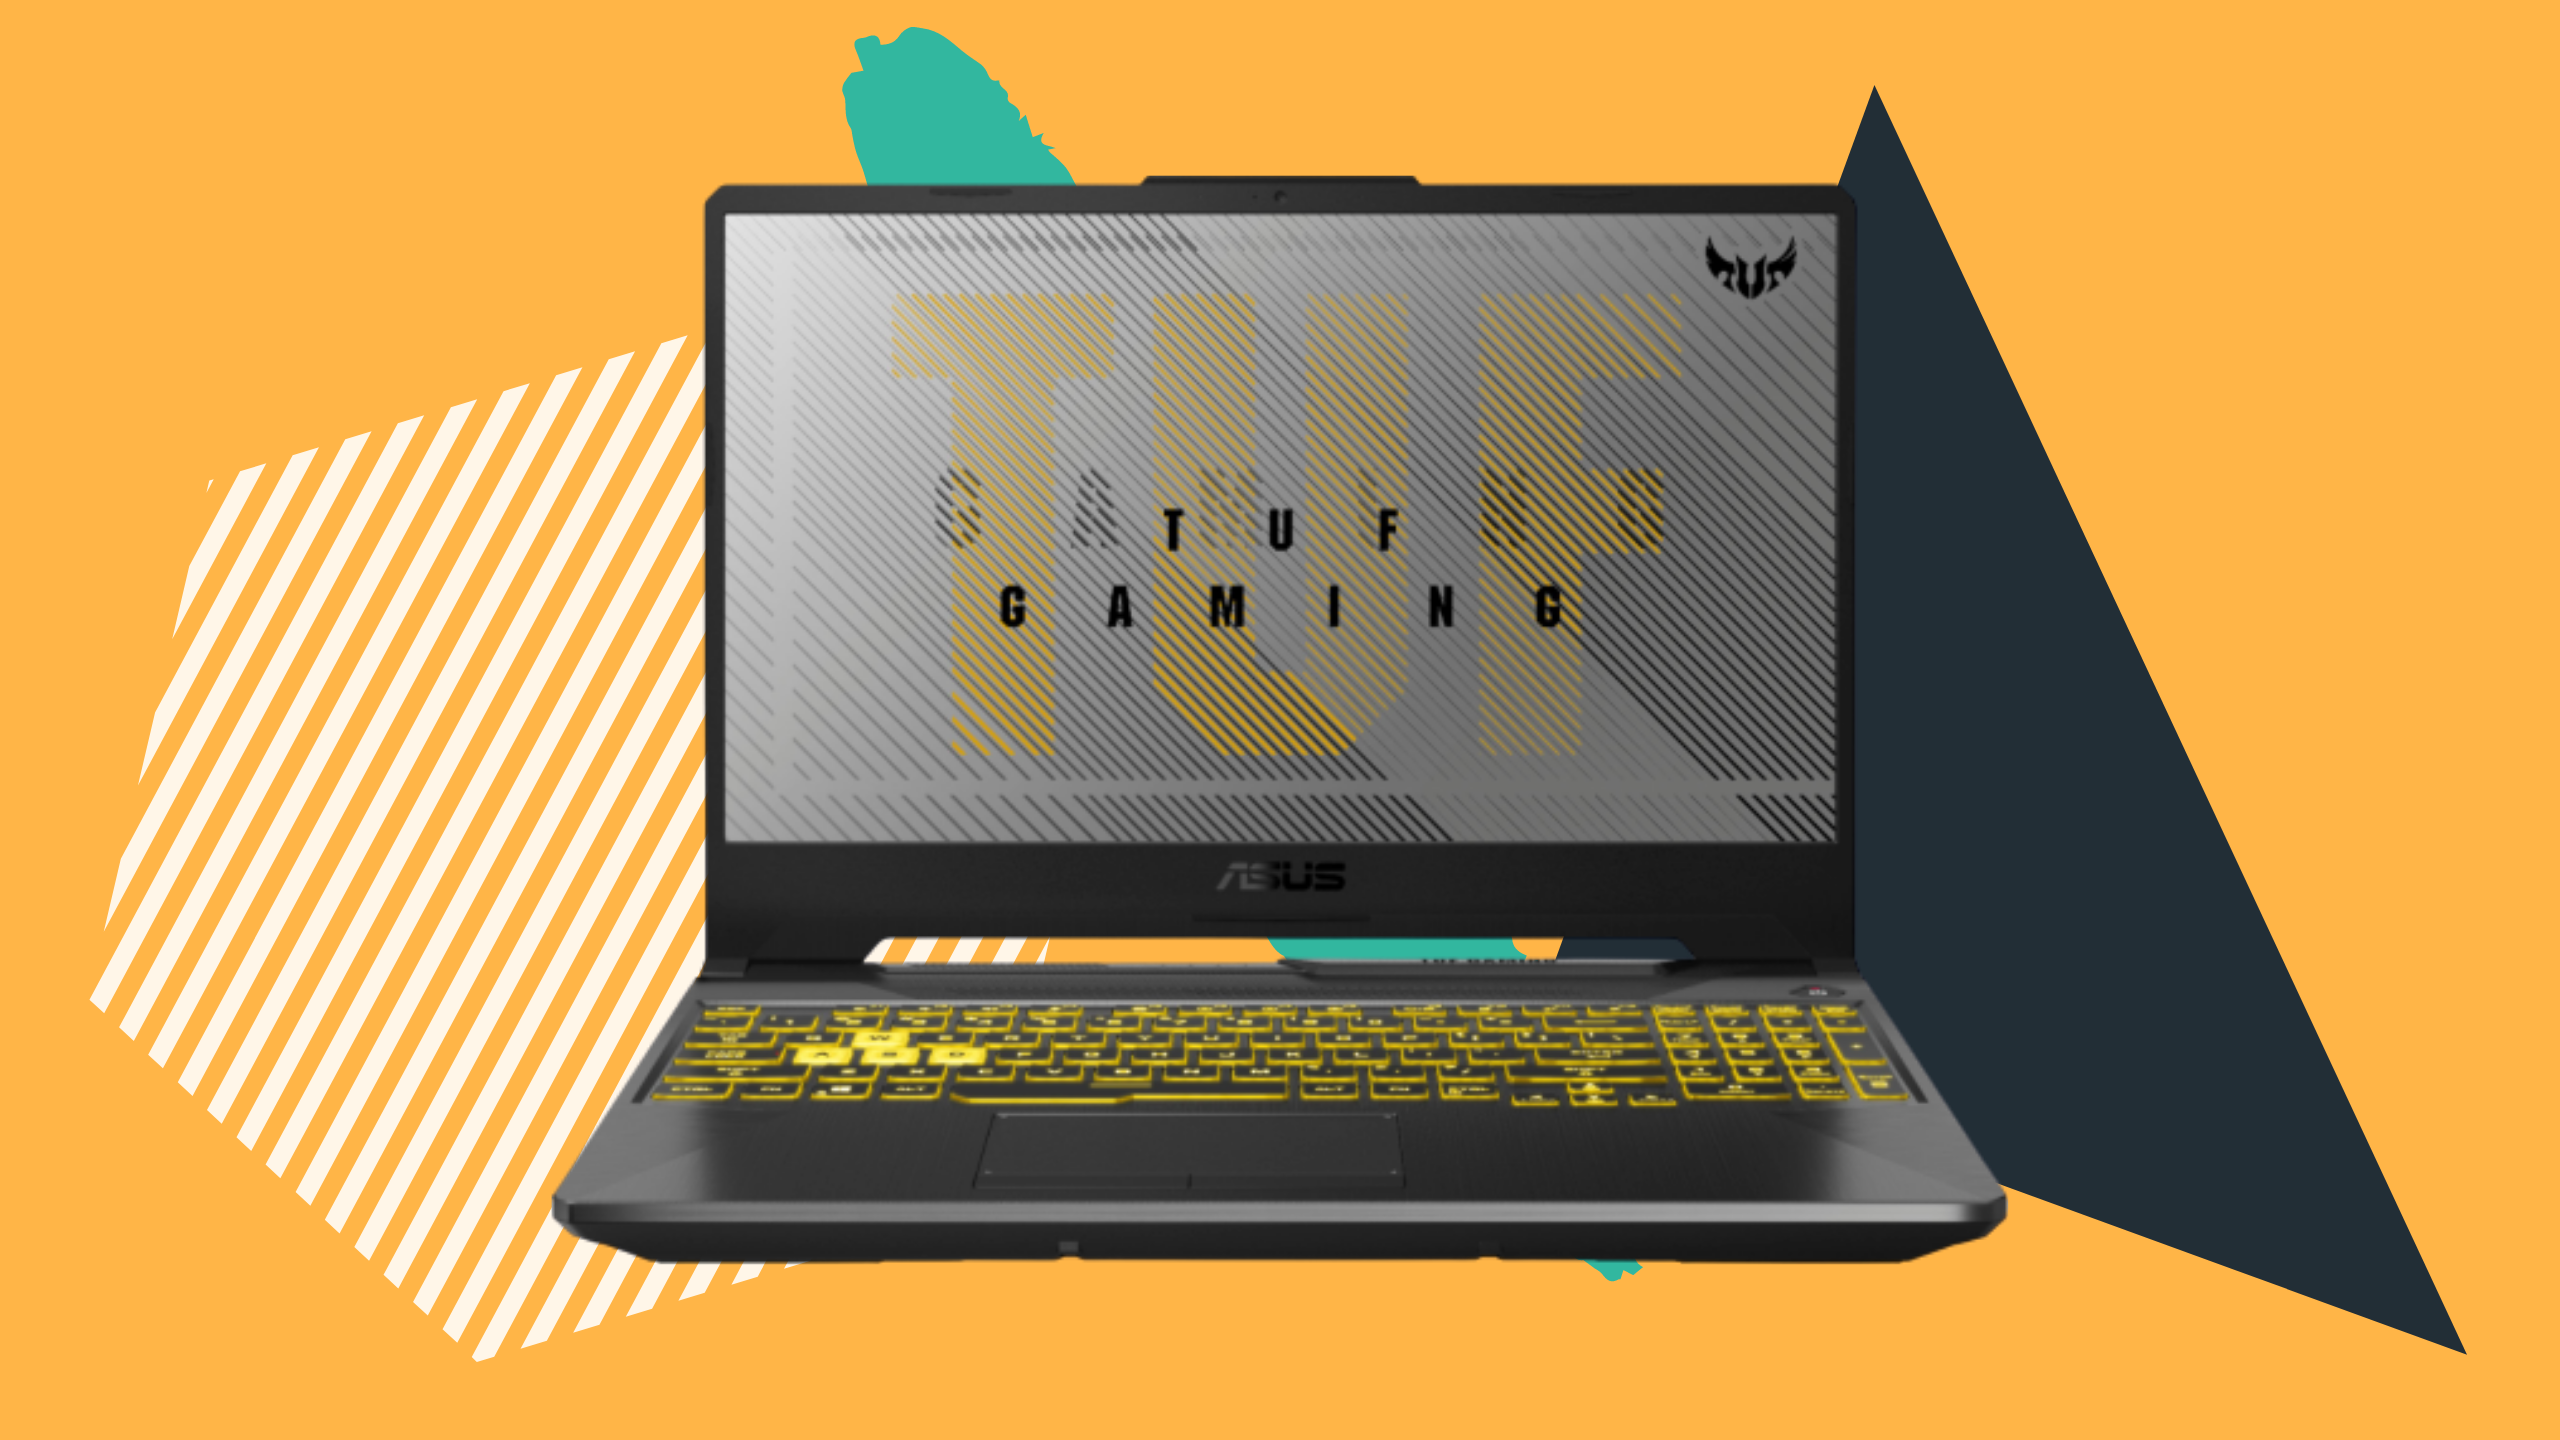 Best Gaming Laptops That Cost Less Than 1000